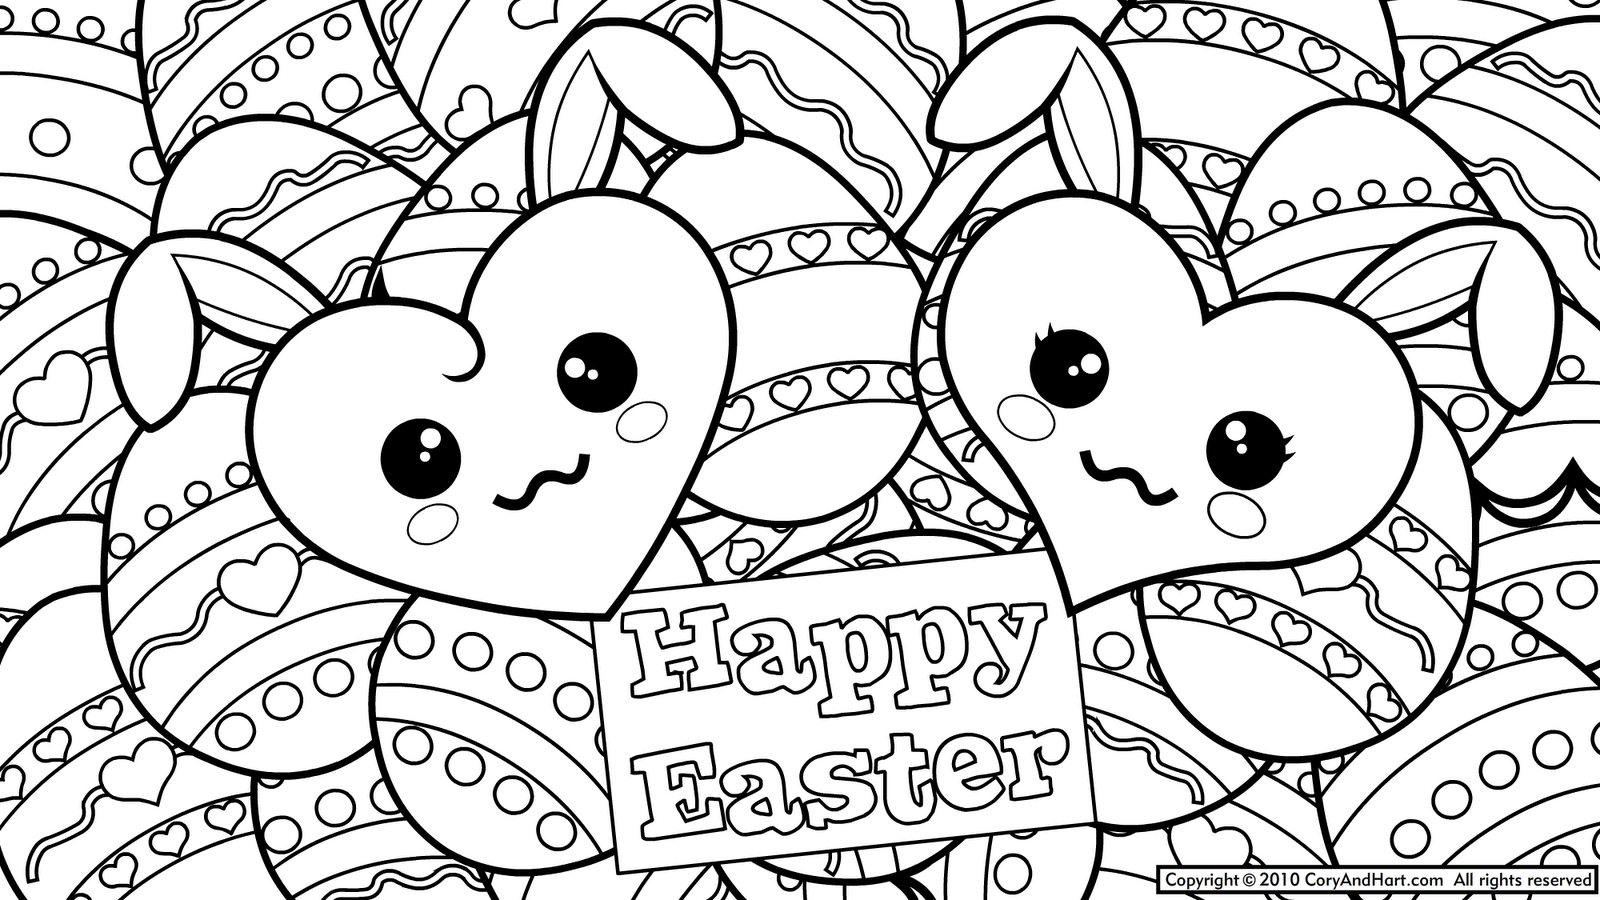 13 Cute Easter Coloring Pages Gtgt Disney Coloring Pages